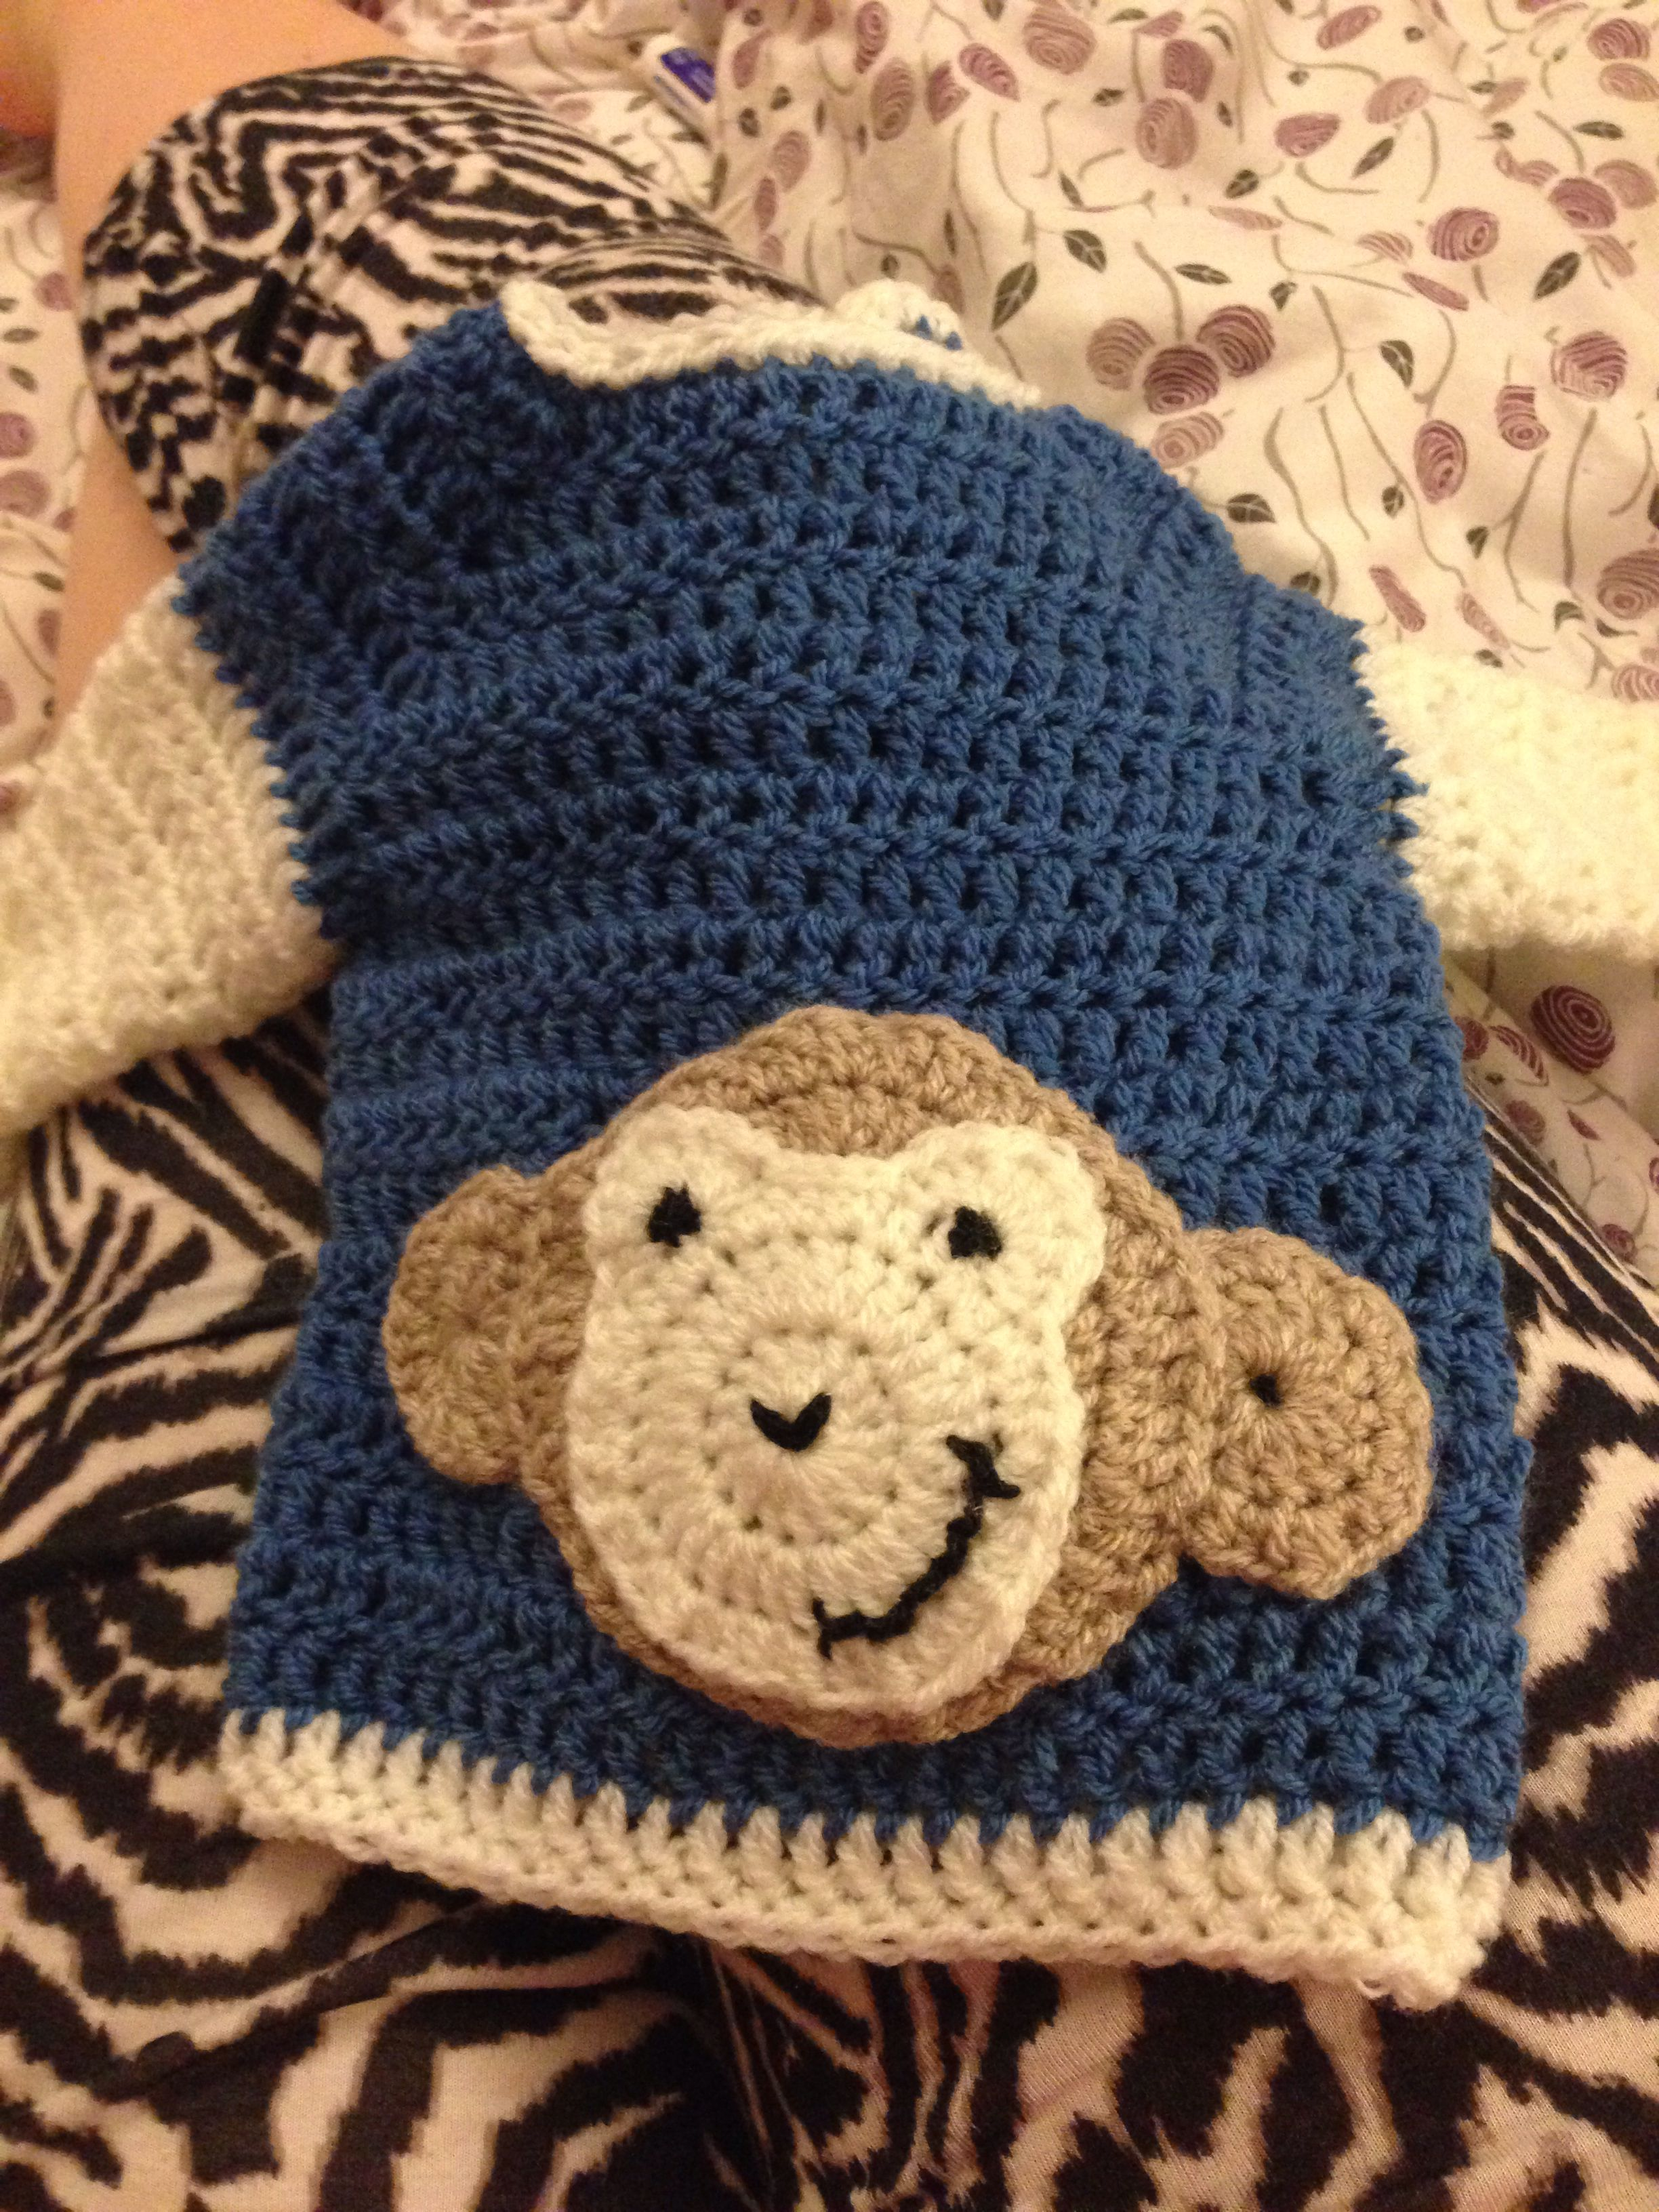 Crochet baby jacket monkey applique